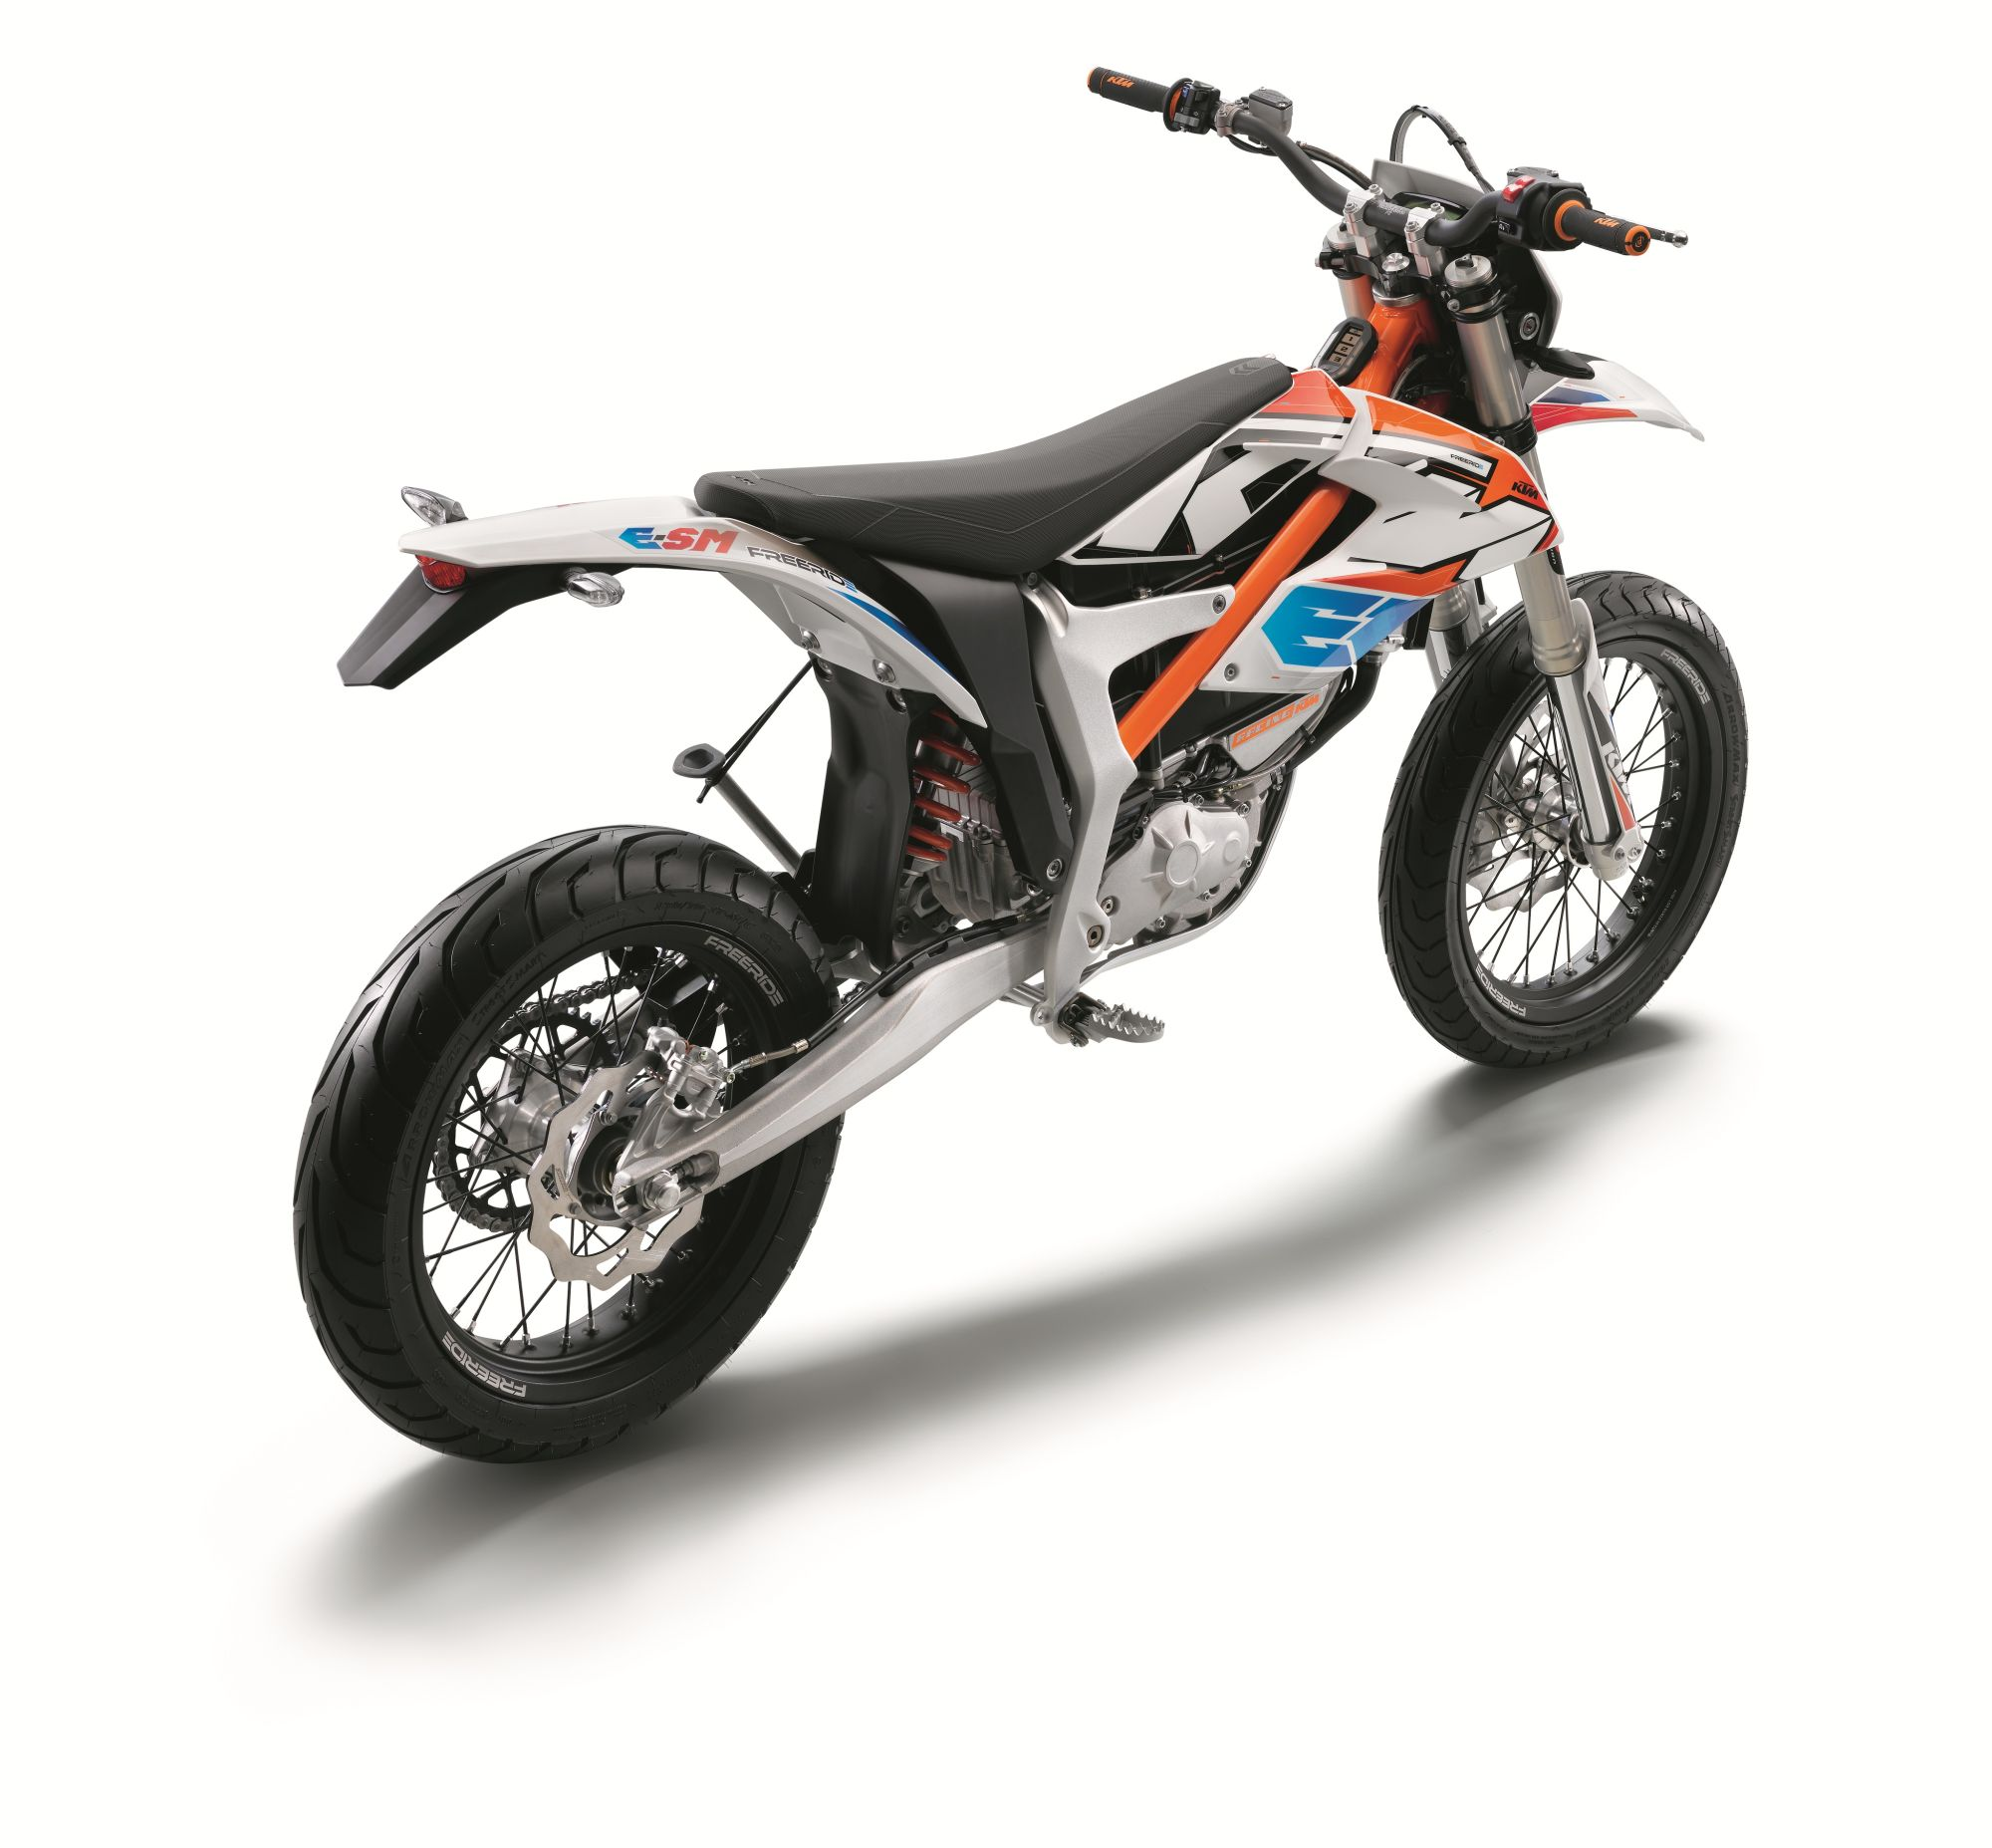 ktm freeride e sm all technical data of the model freeride e sm from ktm. Black Bedroom Furniture Sets. Home Design Ideas